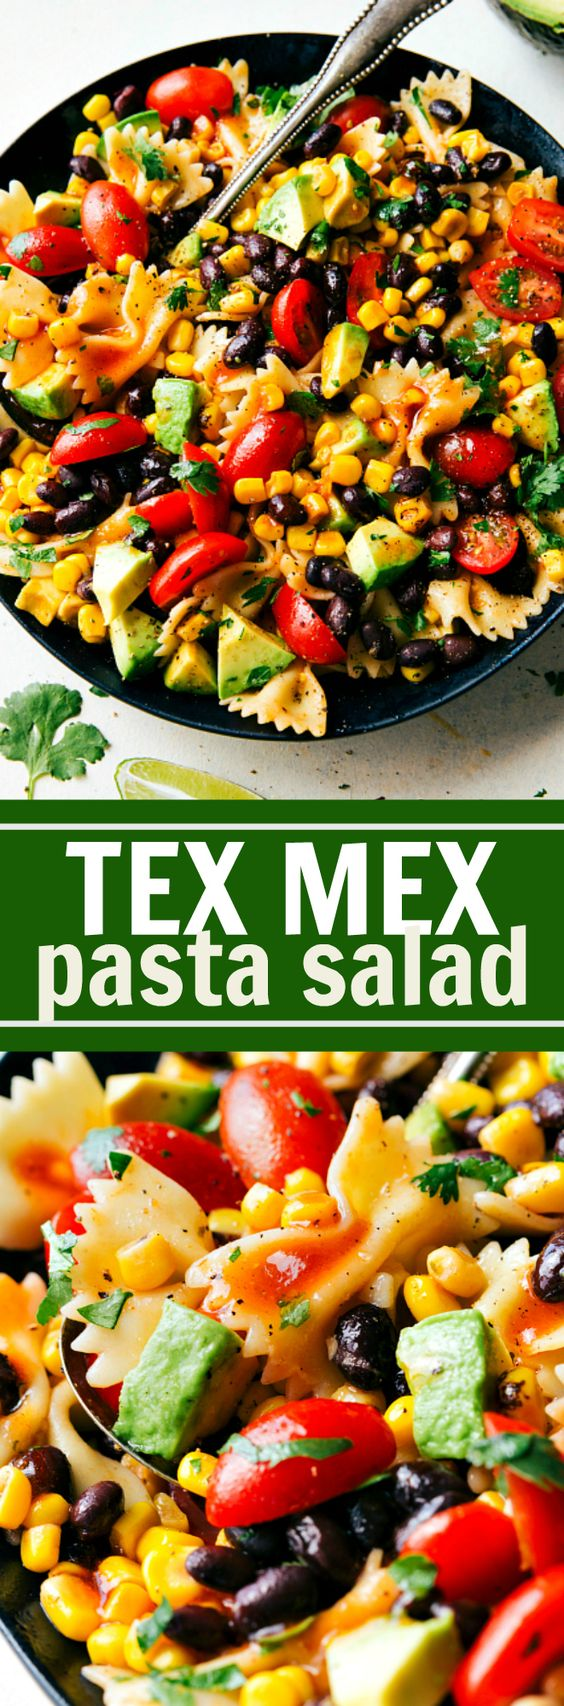 Easy Tex Mex Pasta Salad Recipe via Chelsea's Messy Apron - A delicious and super simple Tex Mex Pasta Salad with corn, black beans, cherry tomatoes, and avocados. An easy Catalina dressing tops this salad. Easy Pasta Salad Recipes - The BEST Yummy Barbecue Side Dishes, Potluck Favorites and Summer Dinner Party Crowd Pleasers #pastasaladrecipes #pastasalads #pastasalad #easypastasalad #potluckrecipes #potluck #partyfood #4thofJuly #picnicfood #sidedishrecipes #easysidedishes #cookoutfood #barbecuefood #blockparty